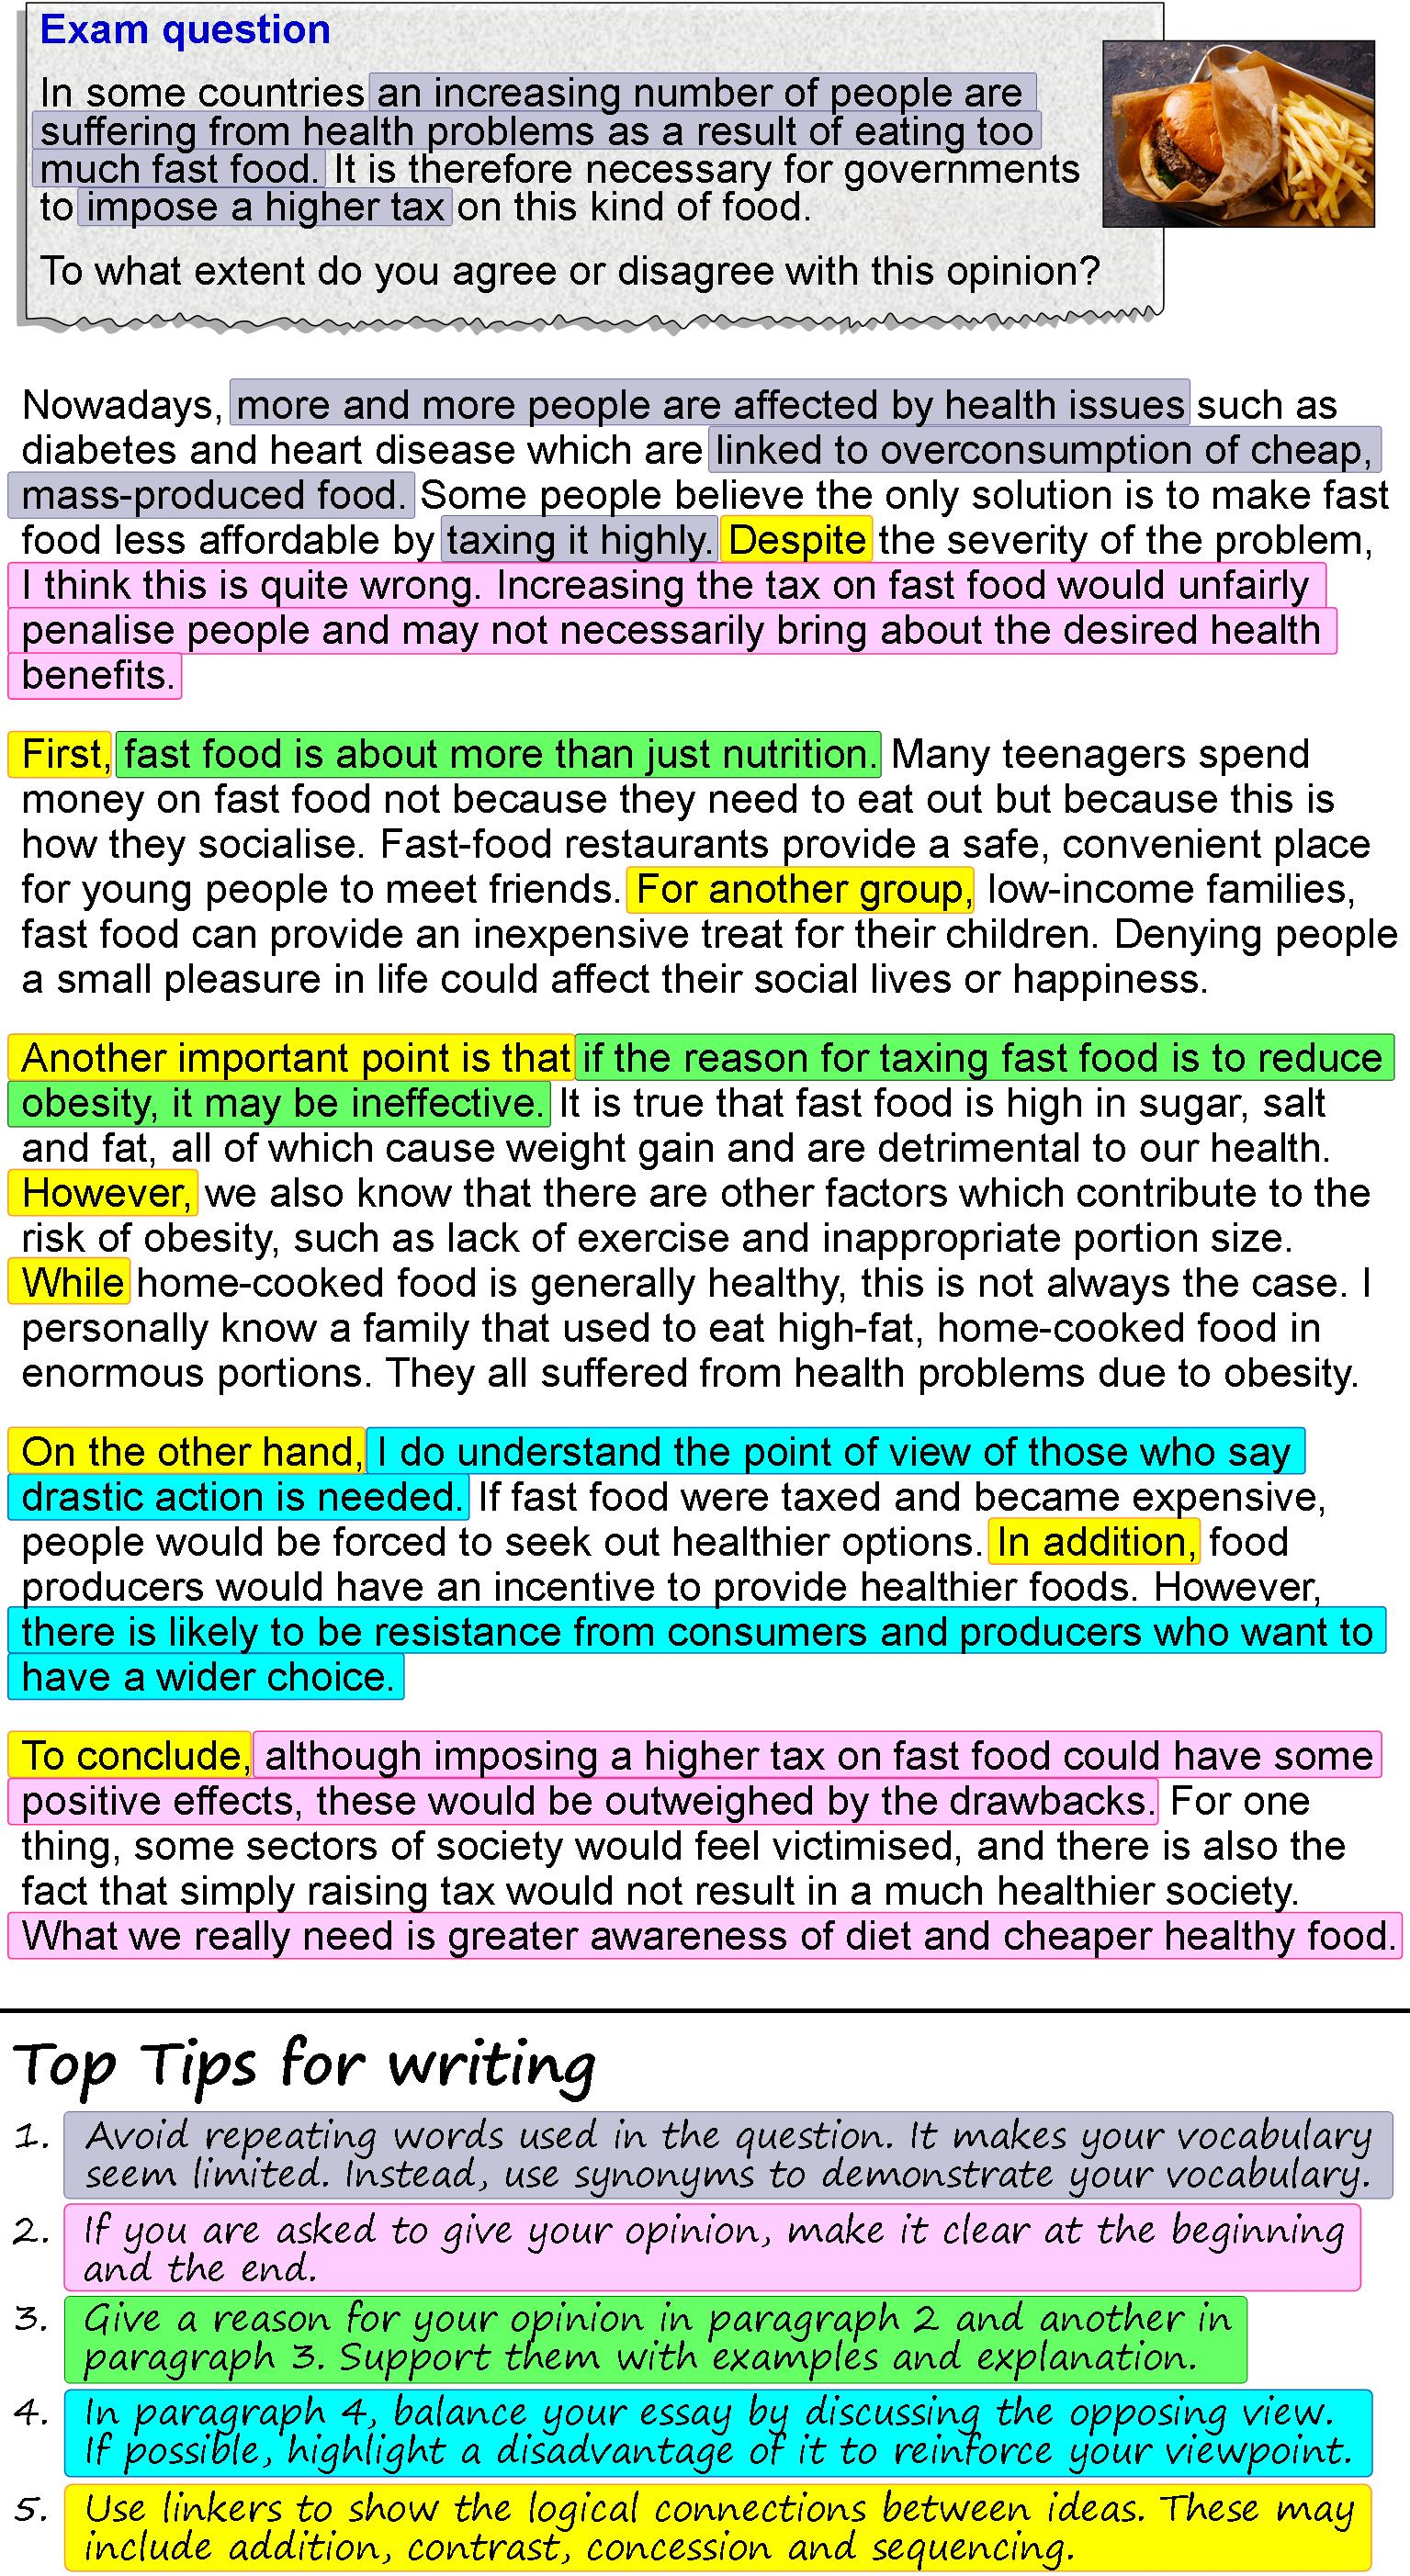 001 Opinion Essay About Fast Food Example An 4 Unbelievable Restaurants Is A Good Alternative To Cooking For Yourself British Council Full